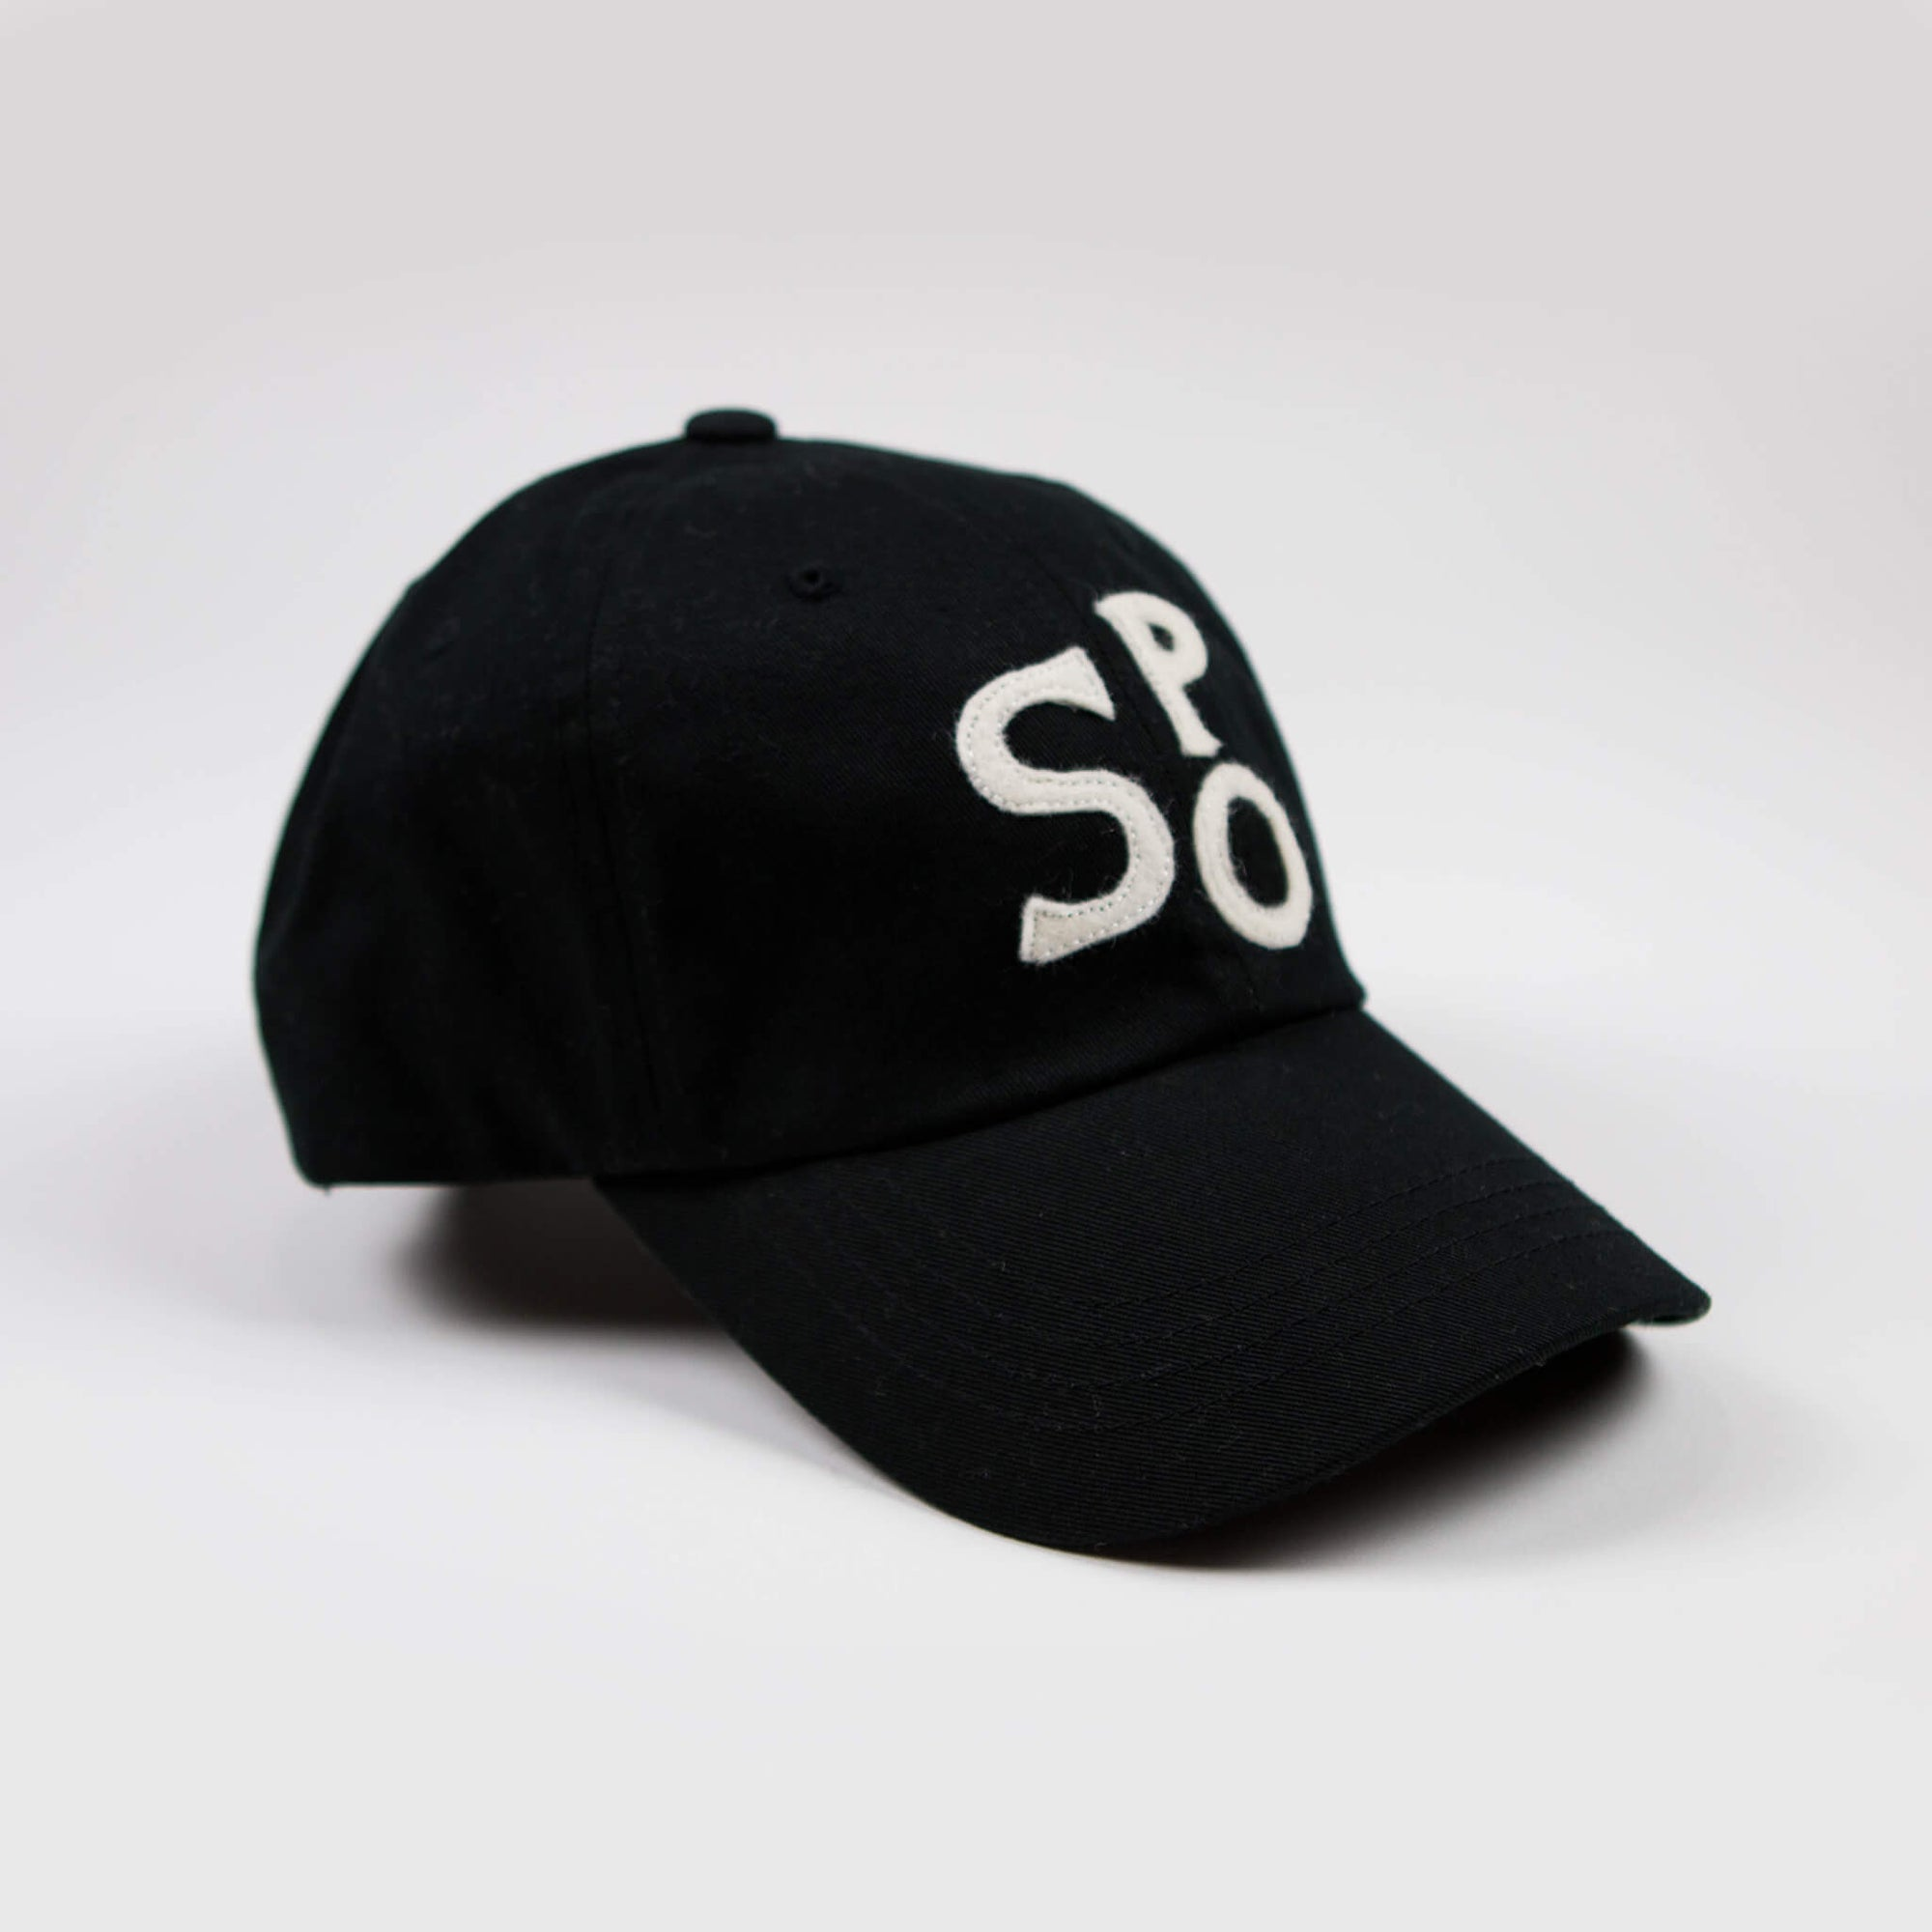 SPO DAD HAT - PREMIUM